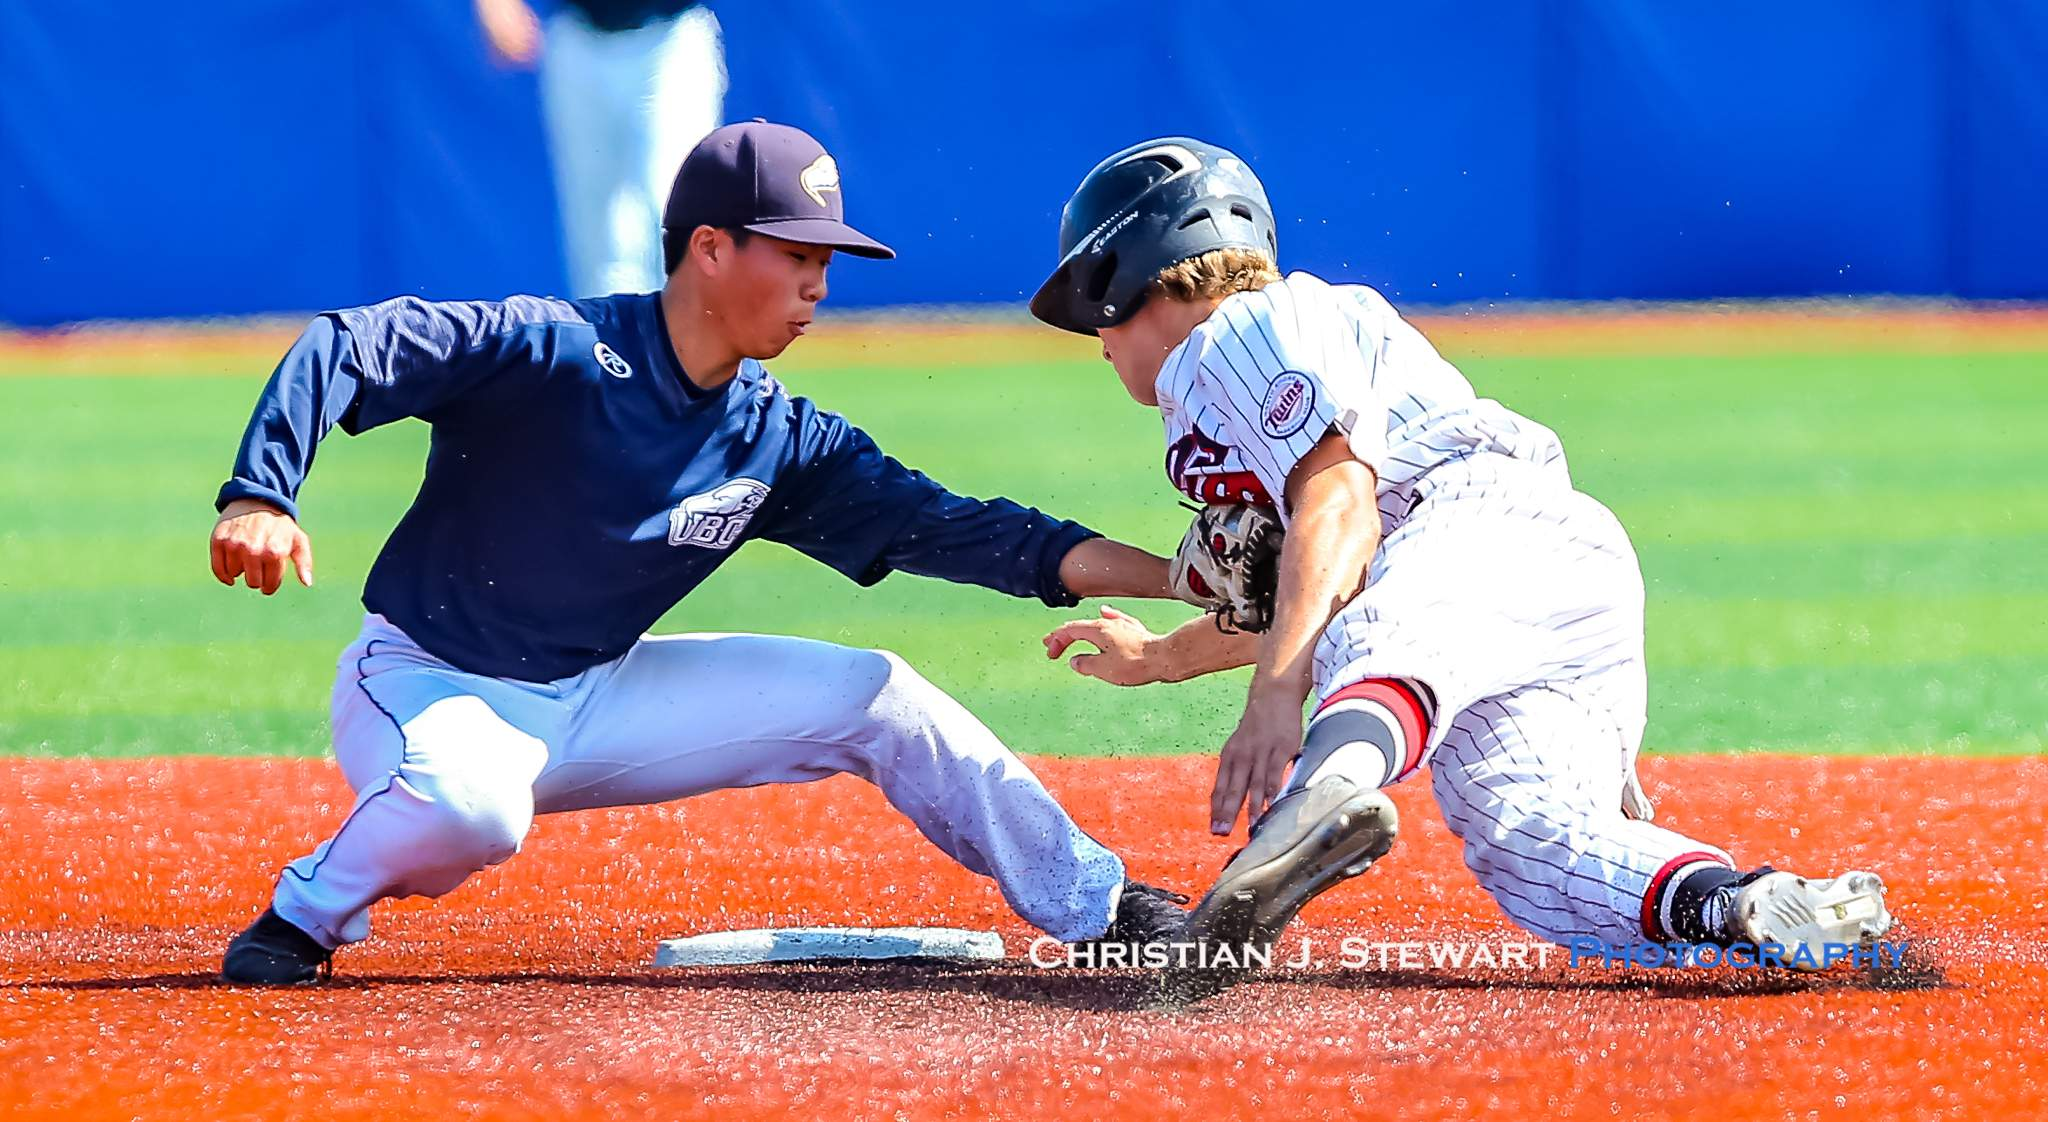 UBC second baseman Kai Koyama-Wong puts the tag on the Twin's Griffin Palfrey on this play in Sunday's game (Photo: Christian J. Stewart)